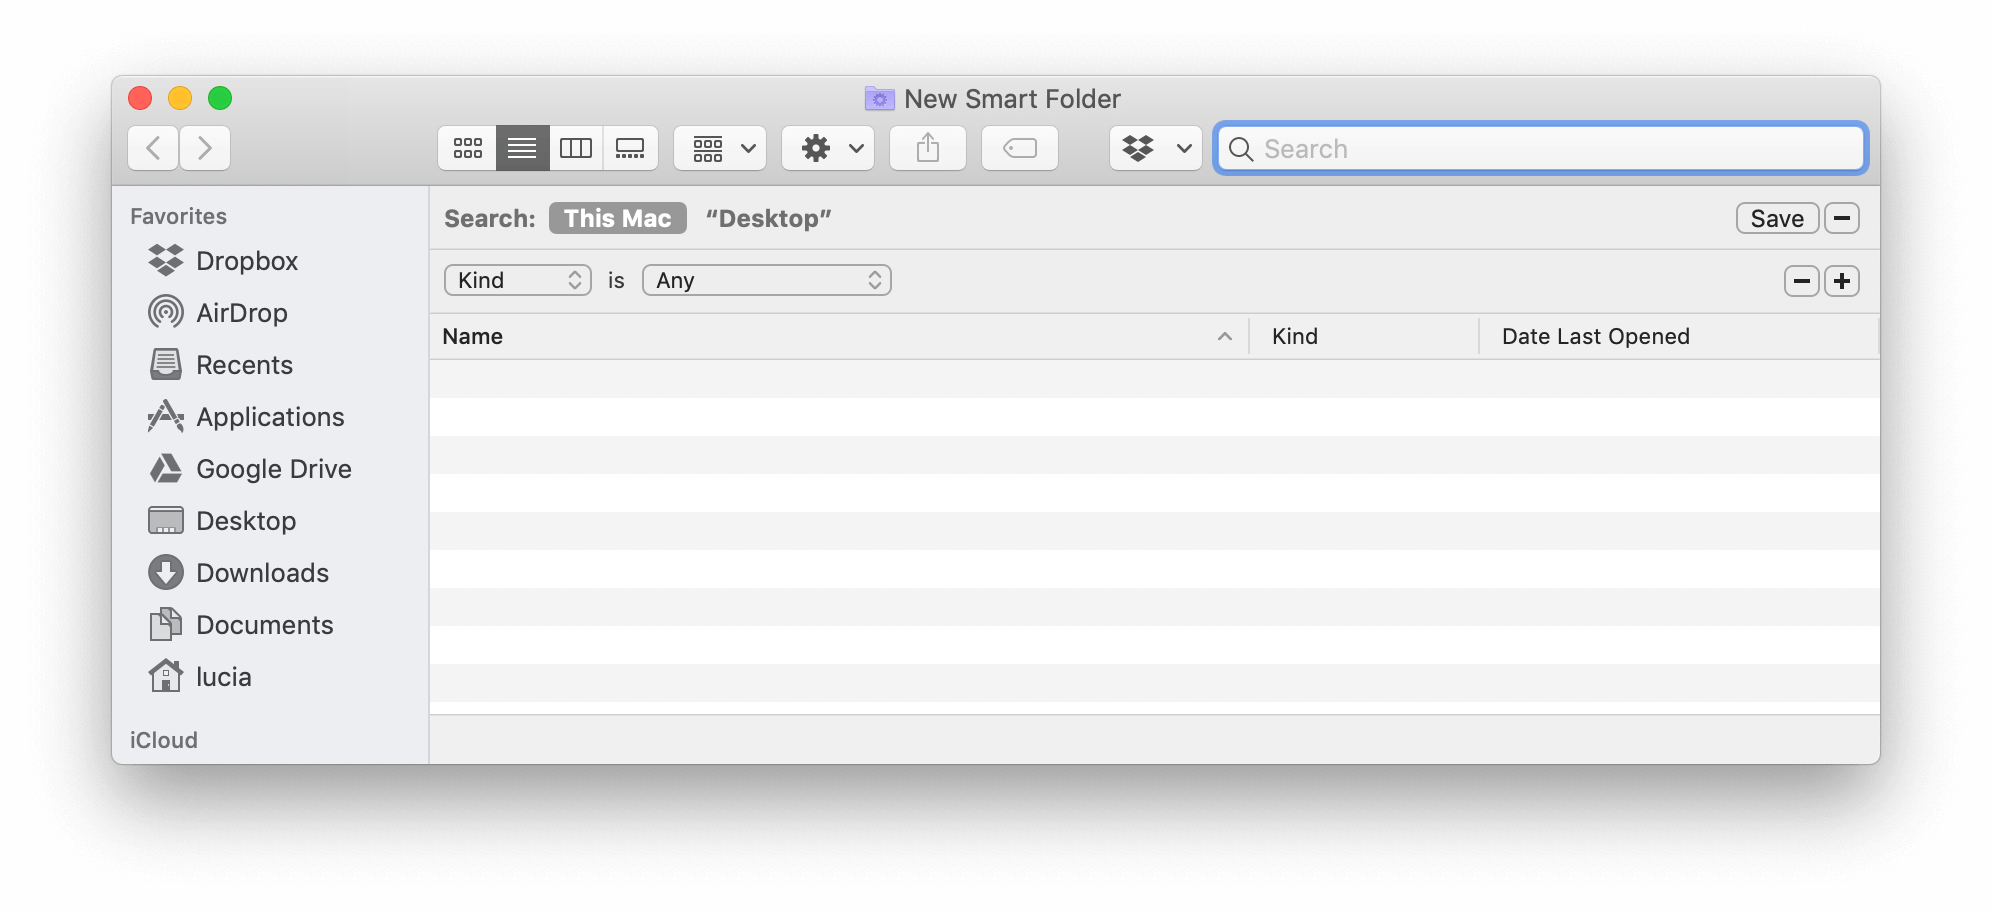 New Smart Folder on Mac